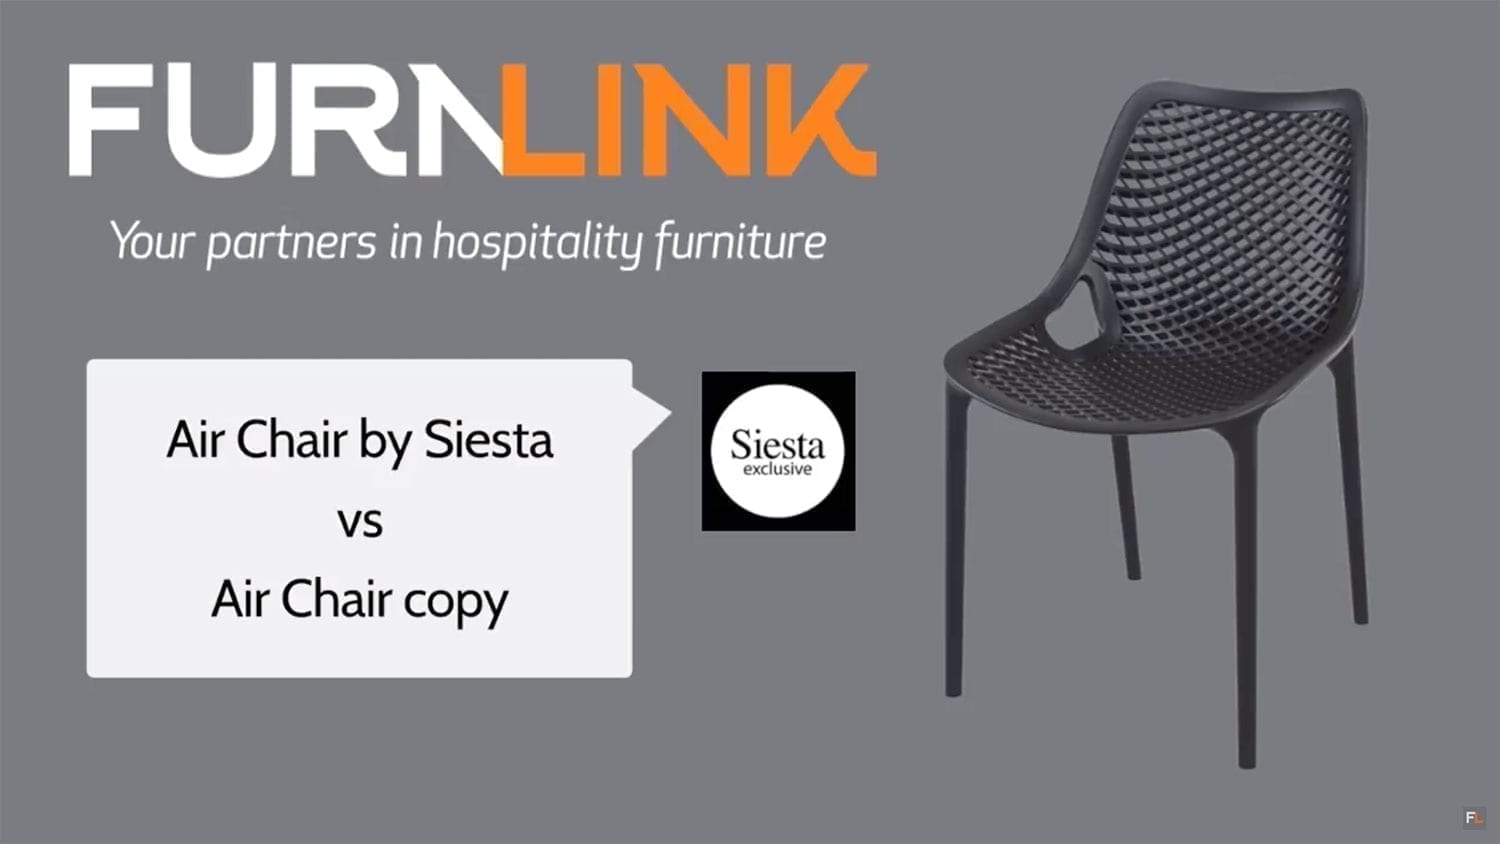 Siesta Air Chair vs Copy Air Chair